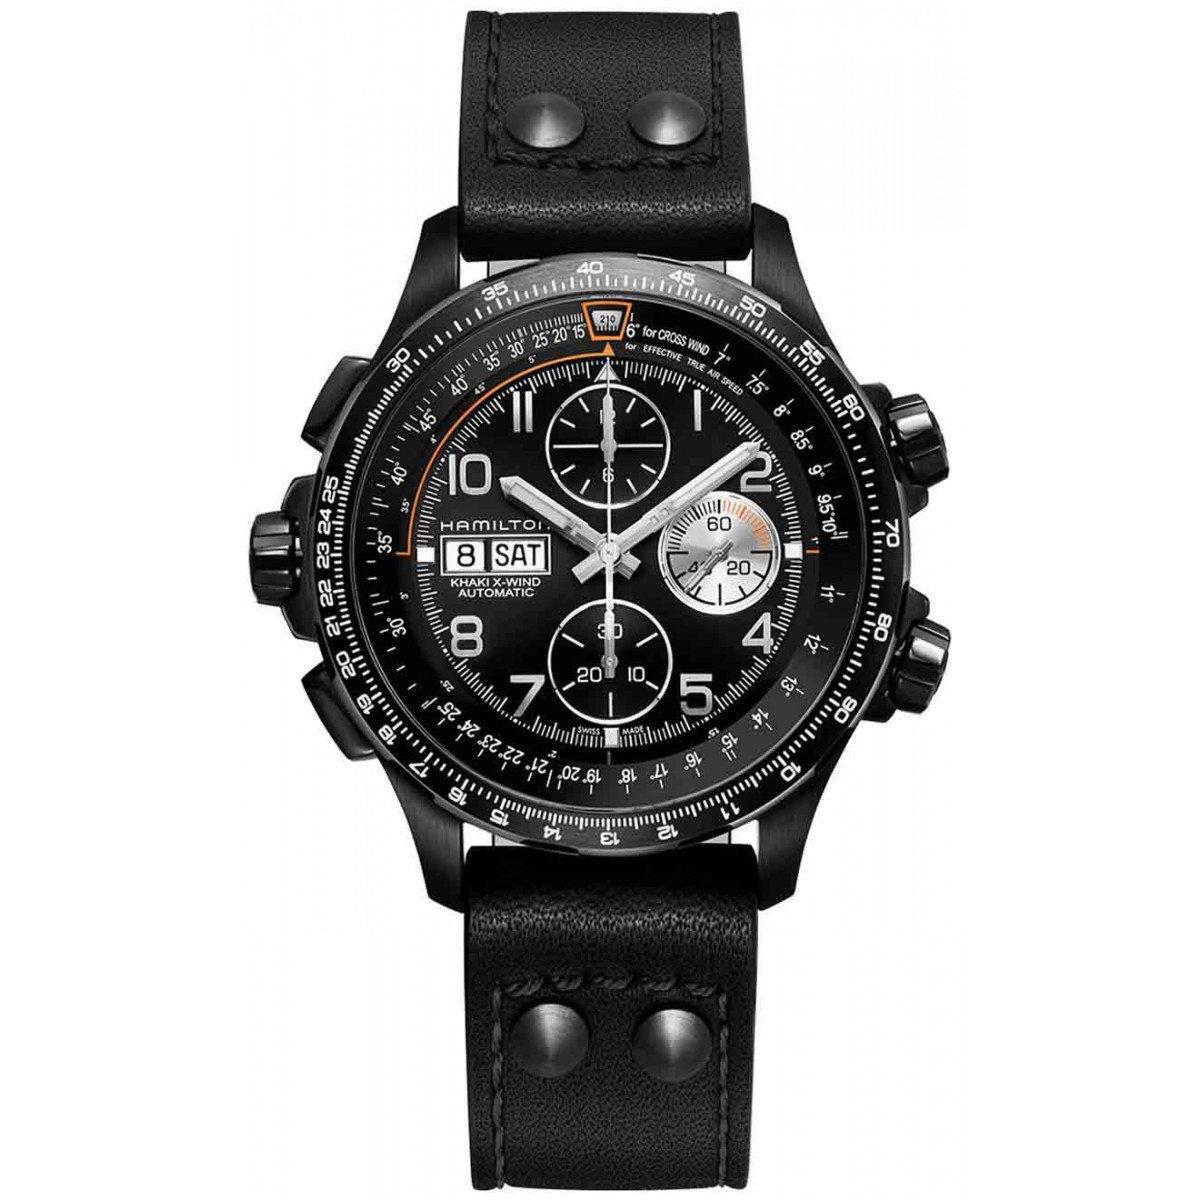 HAMILTON KHAKI AVIATION X-WIND AUTO CHRONO- 100 M - ∅45 MM, ESF NEGRA, PIEL NEGRA